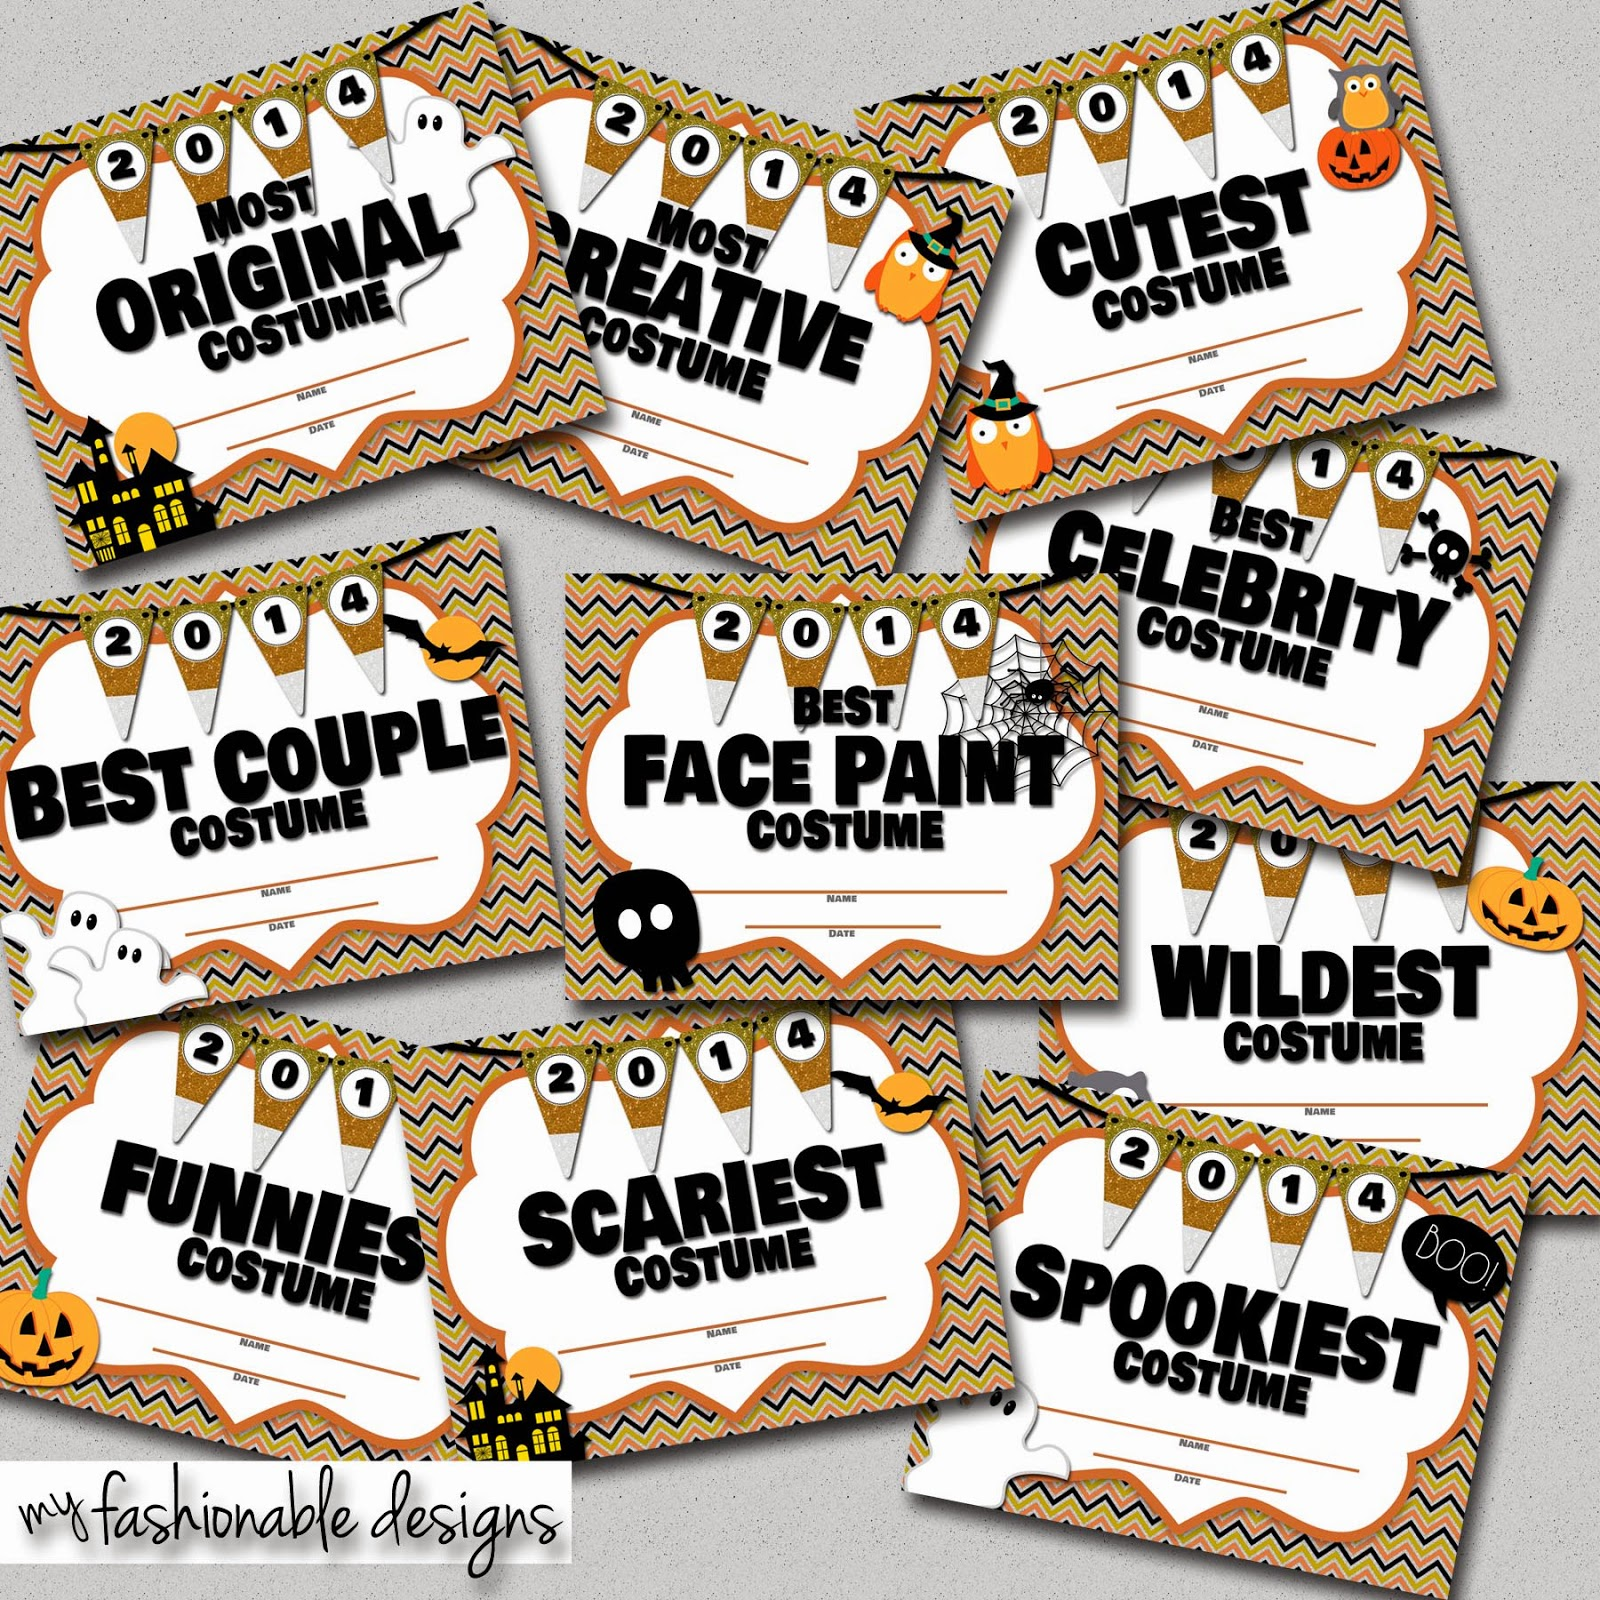 My fashionable designs halloween costume contest certificates halloween costume contest certificates for my blog readers enter coupon code blogger at checkout for 200 off this instant download yelopaper Images